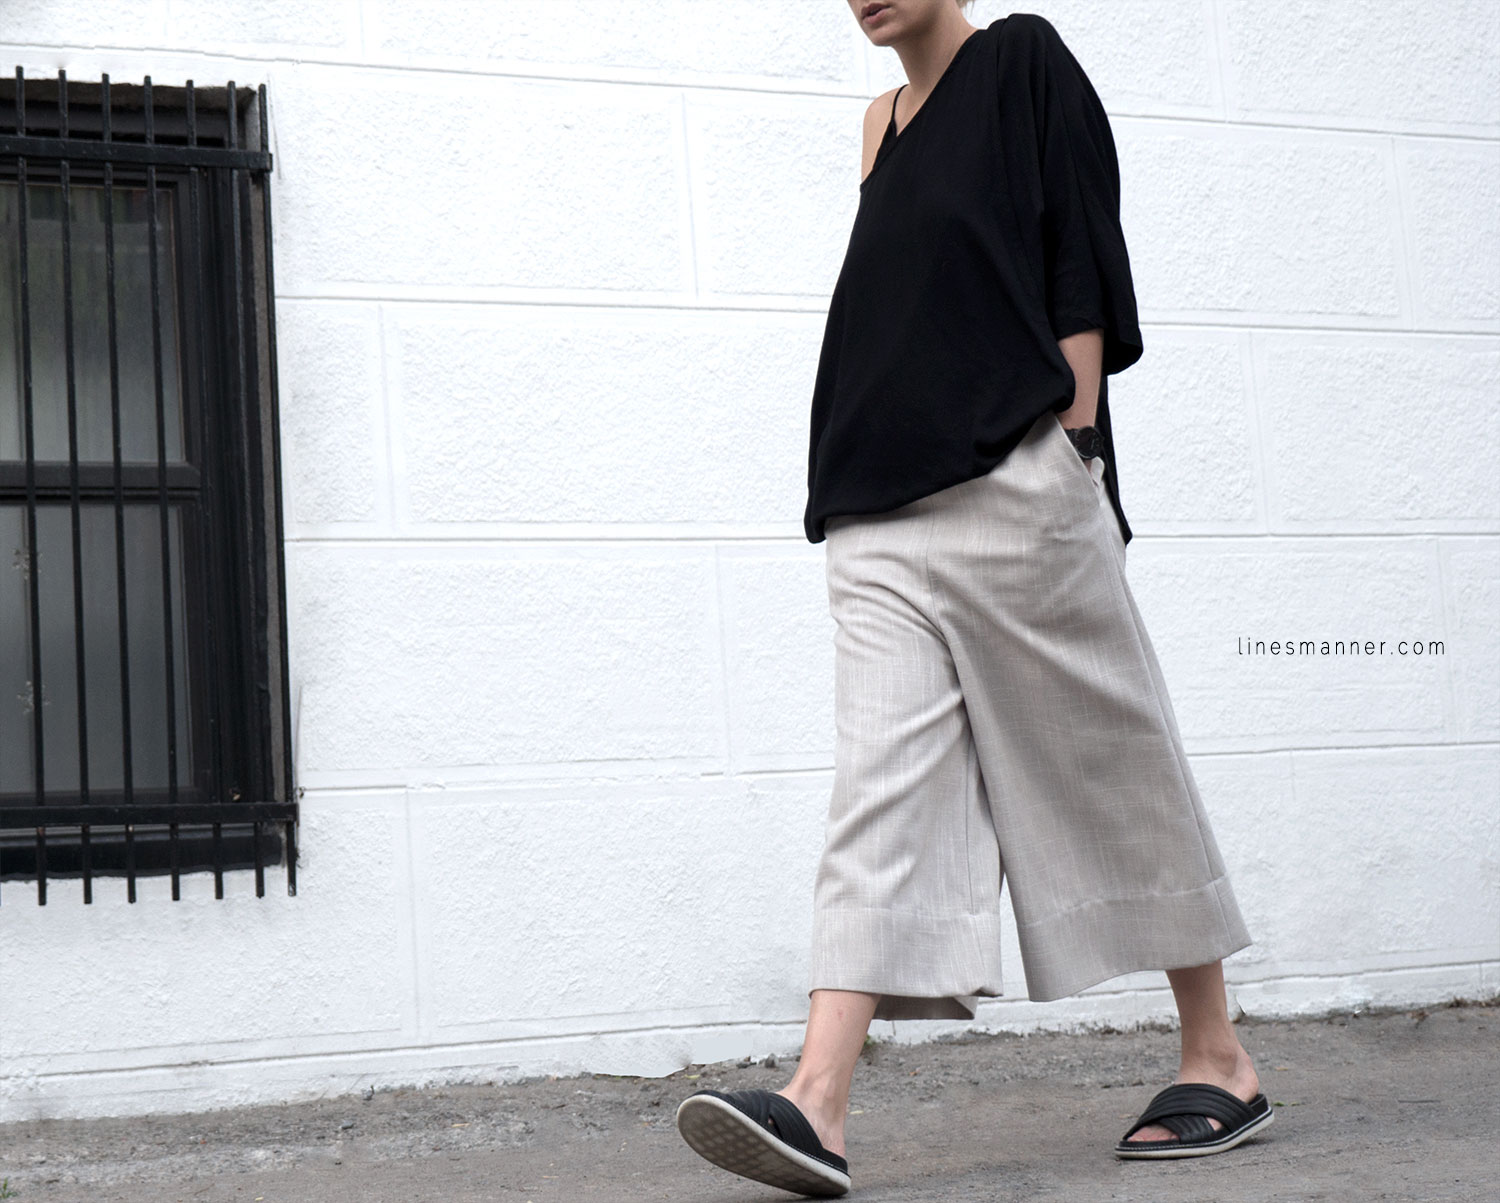 Lines-Manner-Modern-Minimal-Effortless-Casual-Wide_Leg_Culotte-Coidlyn_Wight-Draped-Coton-Linen-Sustainable-Slow_Fashion-Neutrals-Structure-Volume-Fluid-Simplicity-Details-11